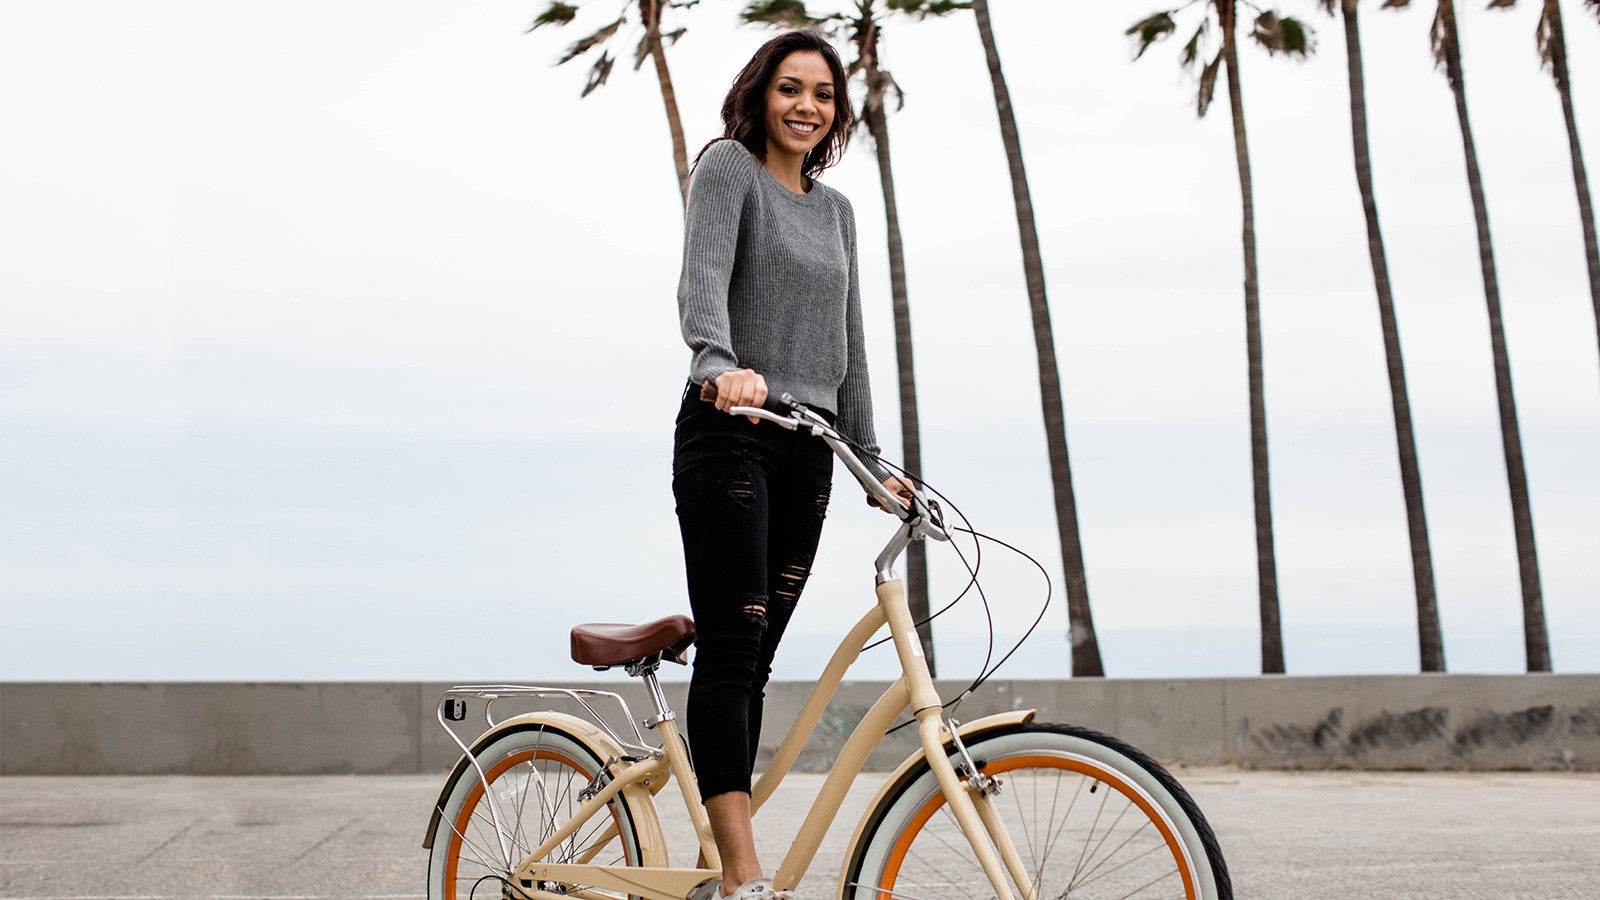 Advantages Of A Beach Cruiser With Gears Over A Single-Speed Bike